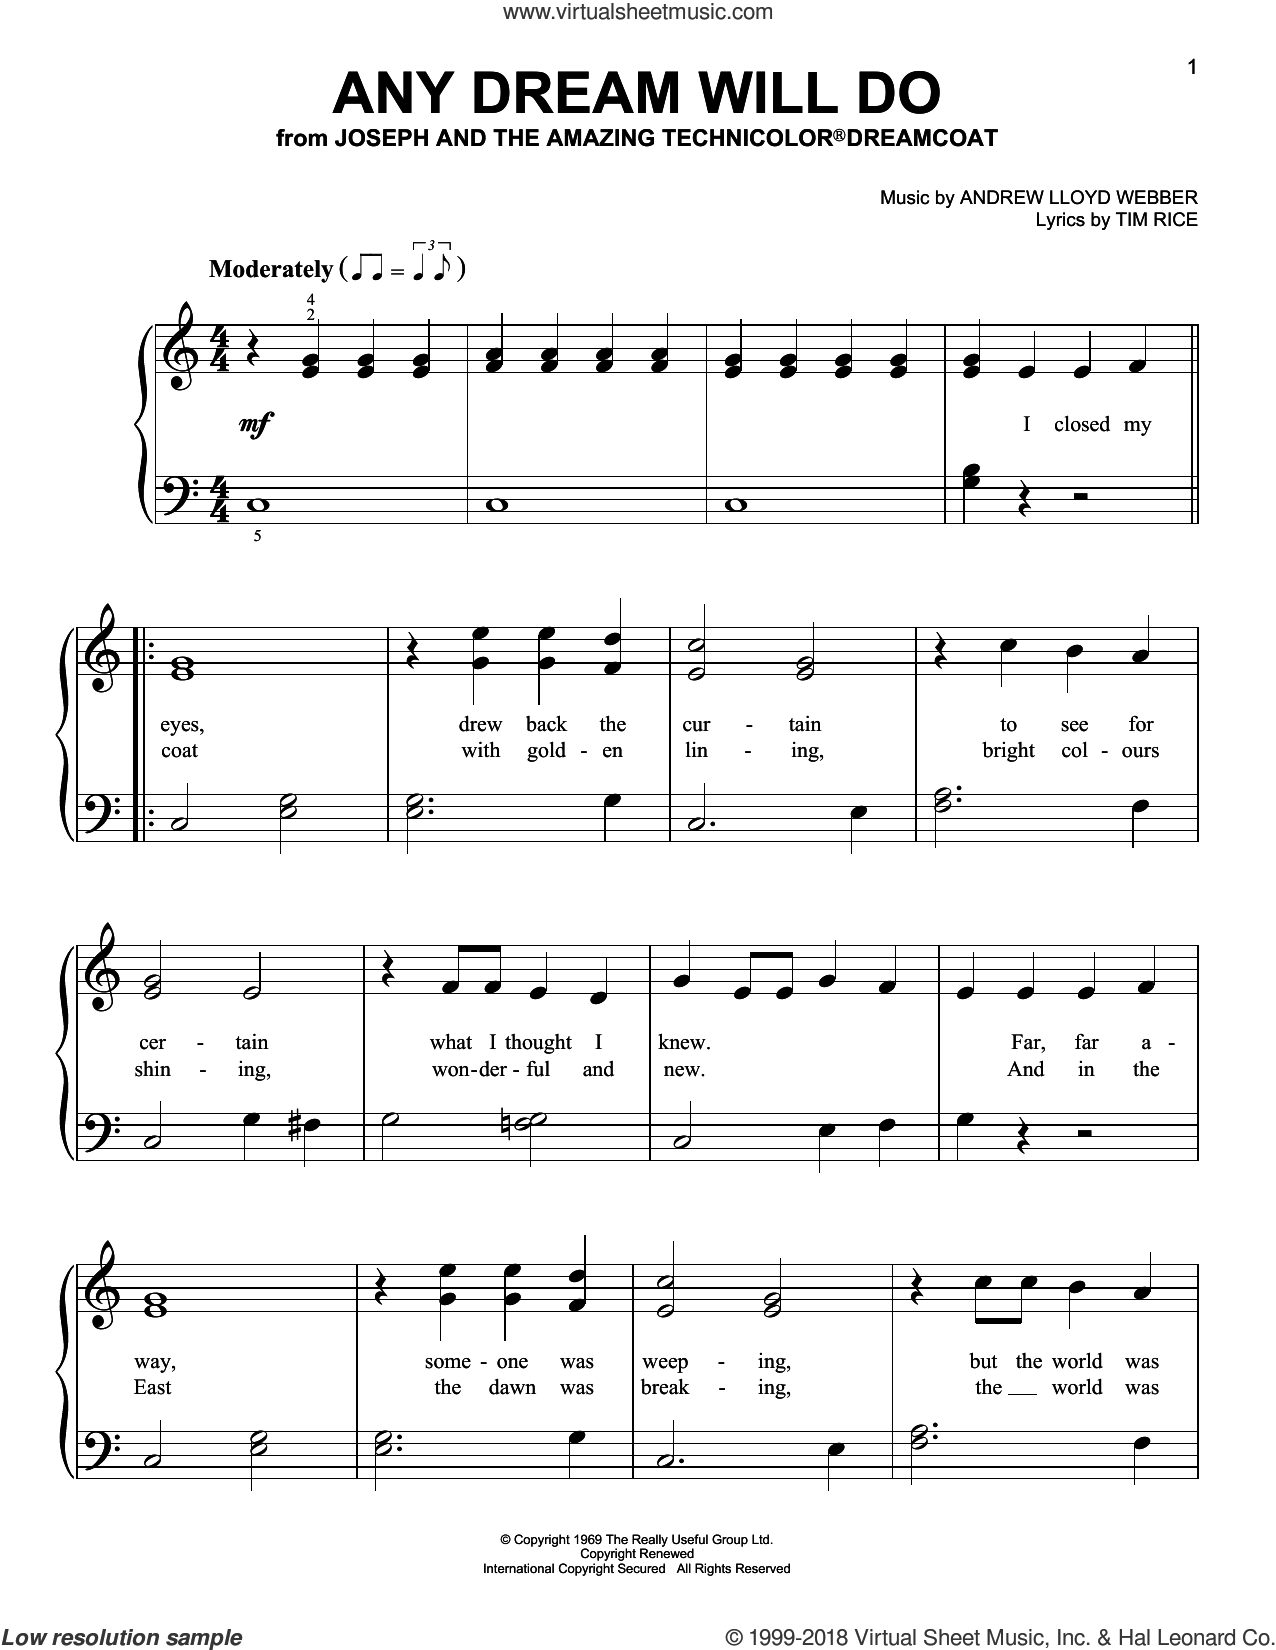 Any Dream Will Do sheet music for piano solo by Andrew Lloyd Webber and Tim Rice, beginner skill level